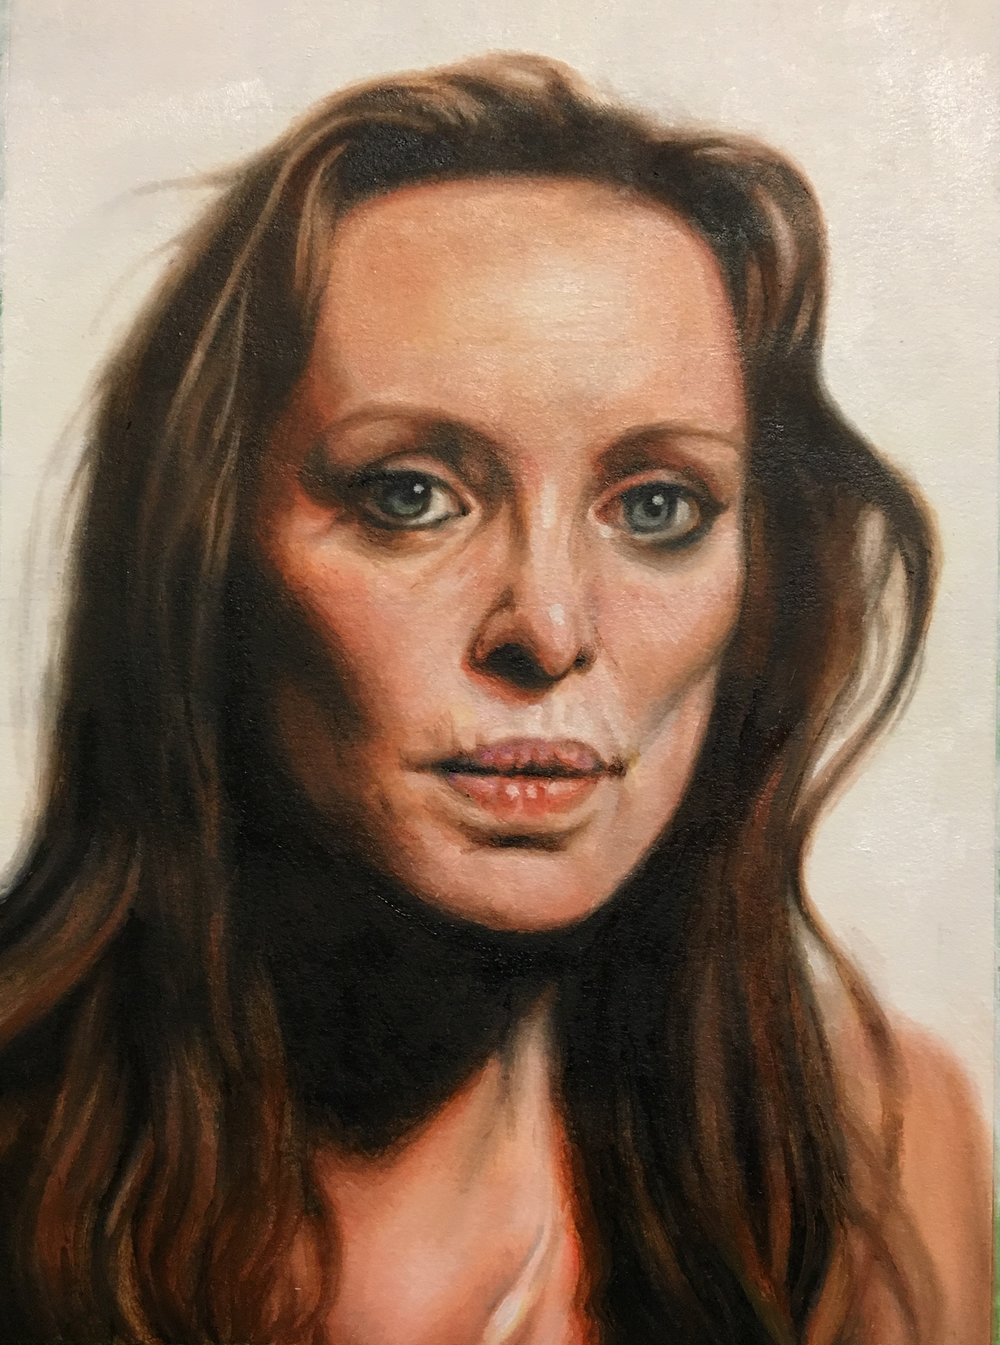 Heather, 2017,oil on paper, 11 x 8 inches